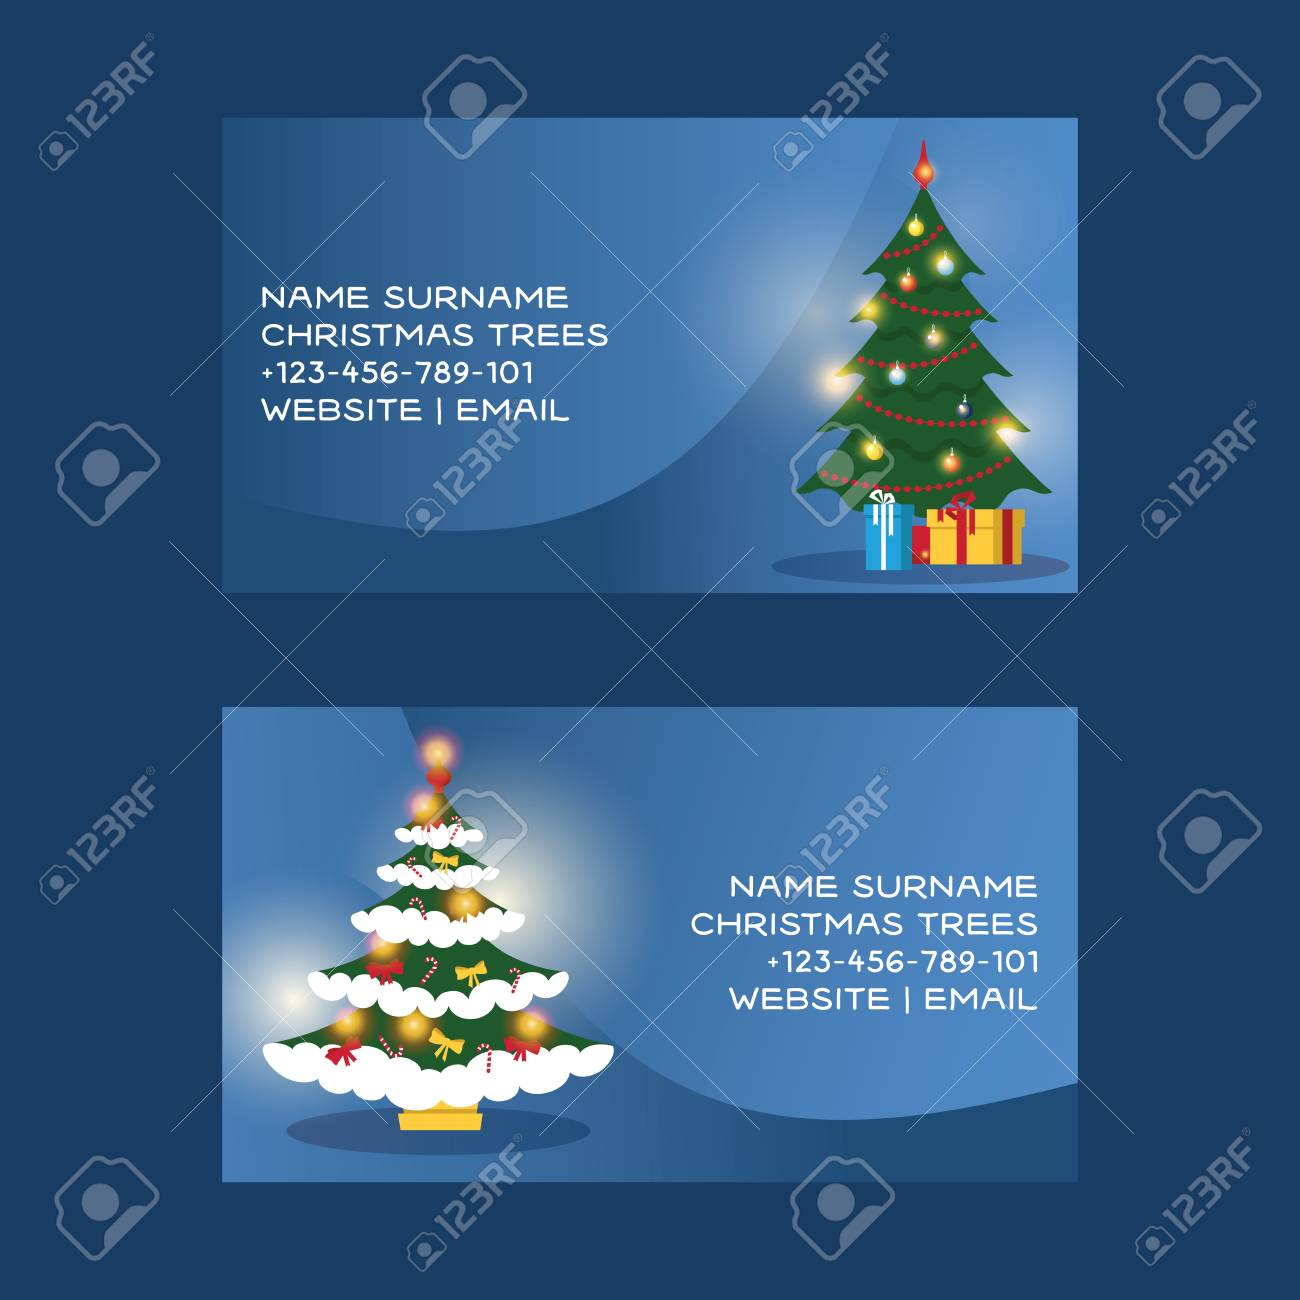 Christmas Business Card Vector Merry Xmas Visiting With Tree And New Year